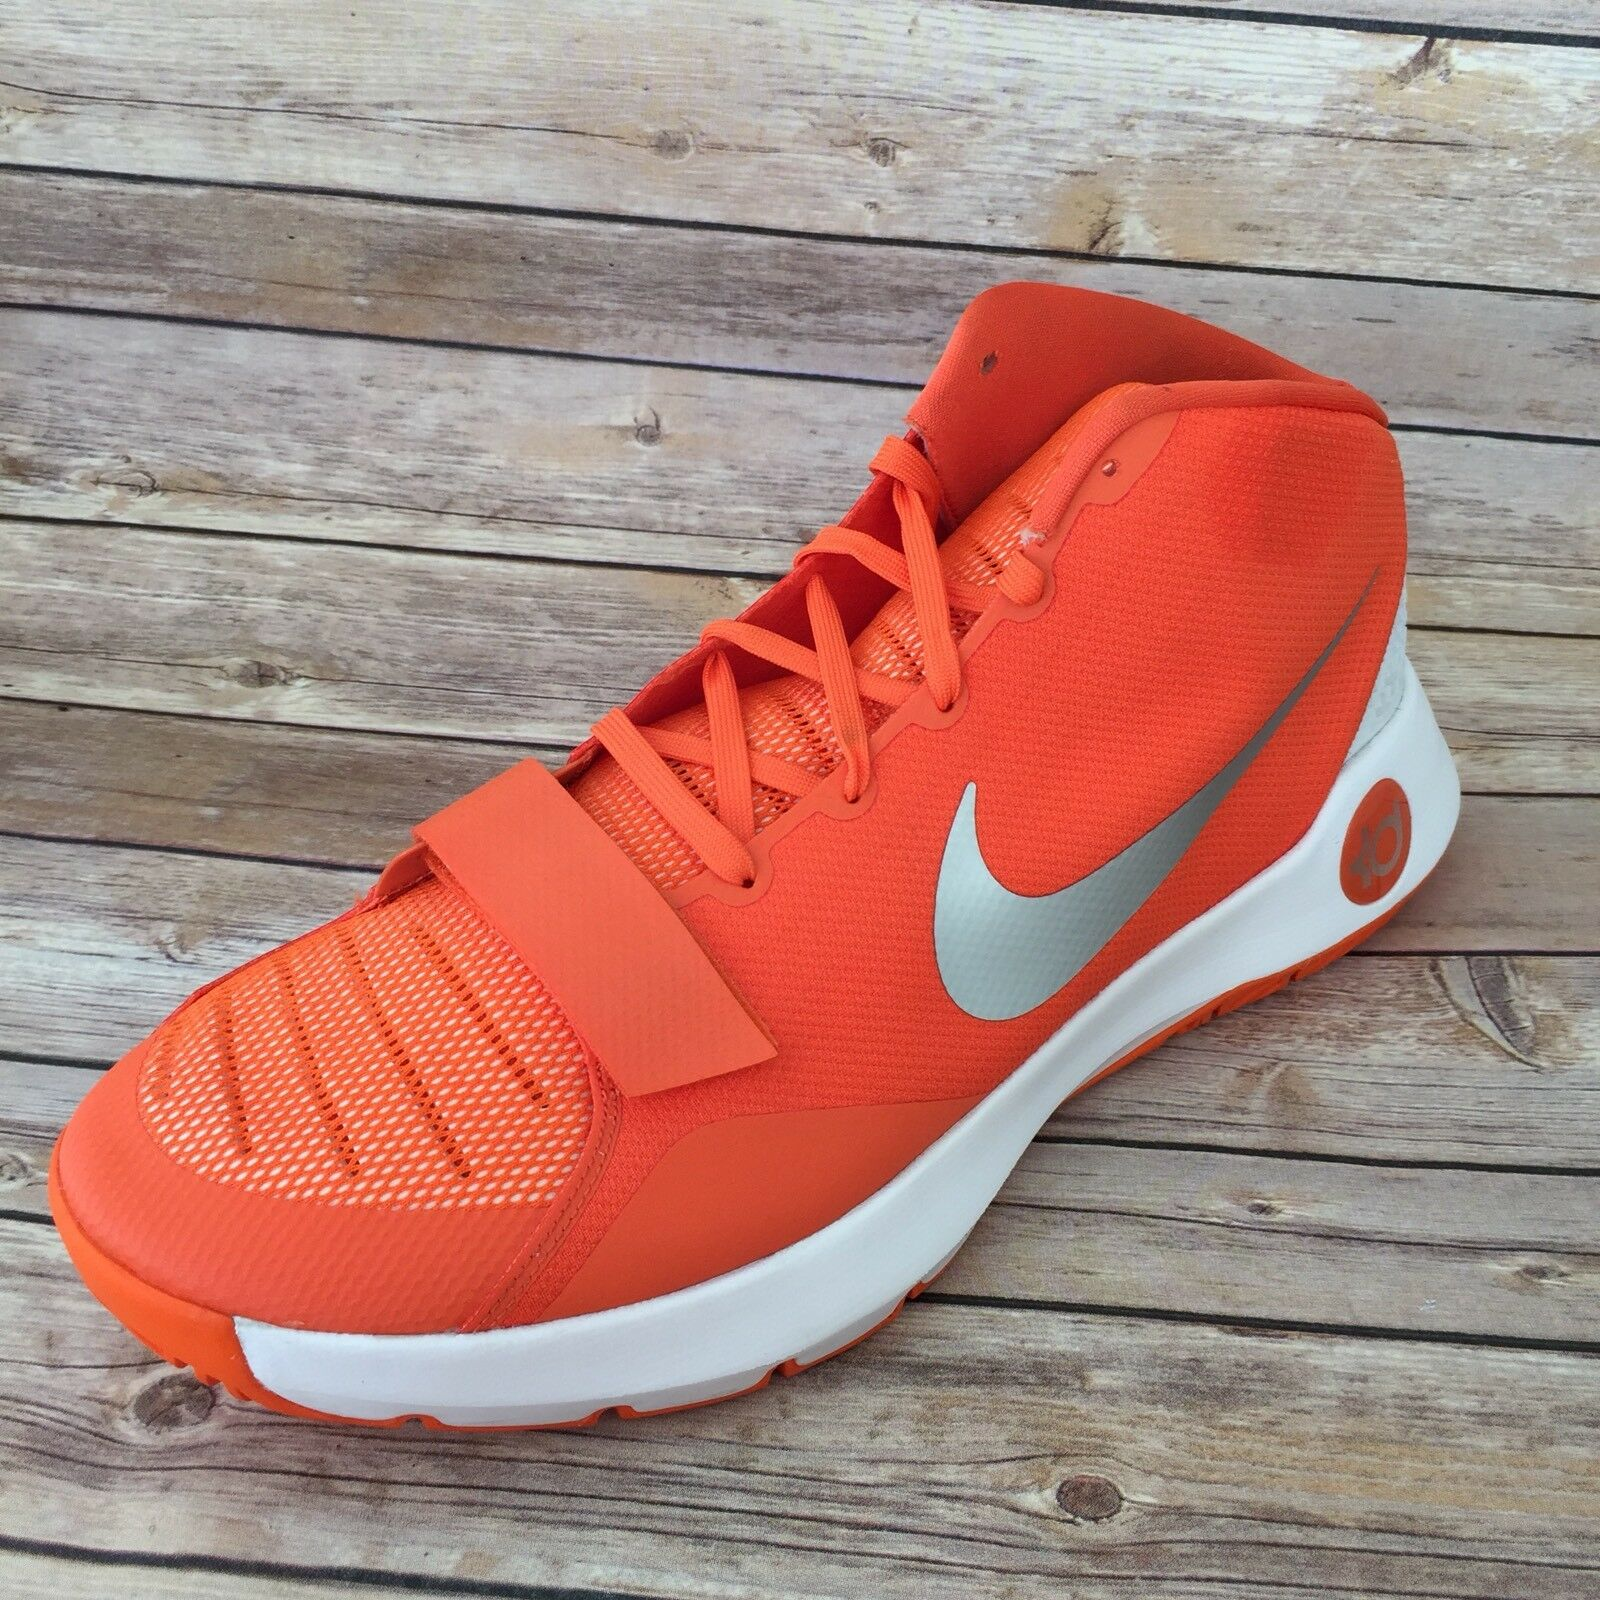 Nike KD Trey Chaussure 5 III Kevin Durant Chaussure Trey Hommes 4c08af